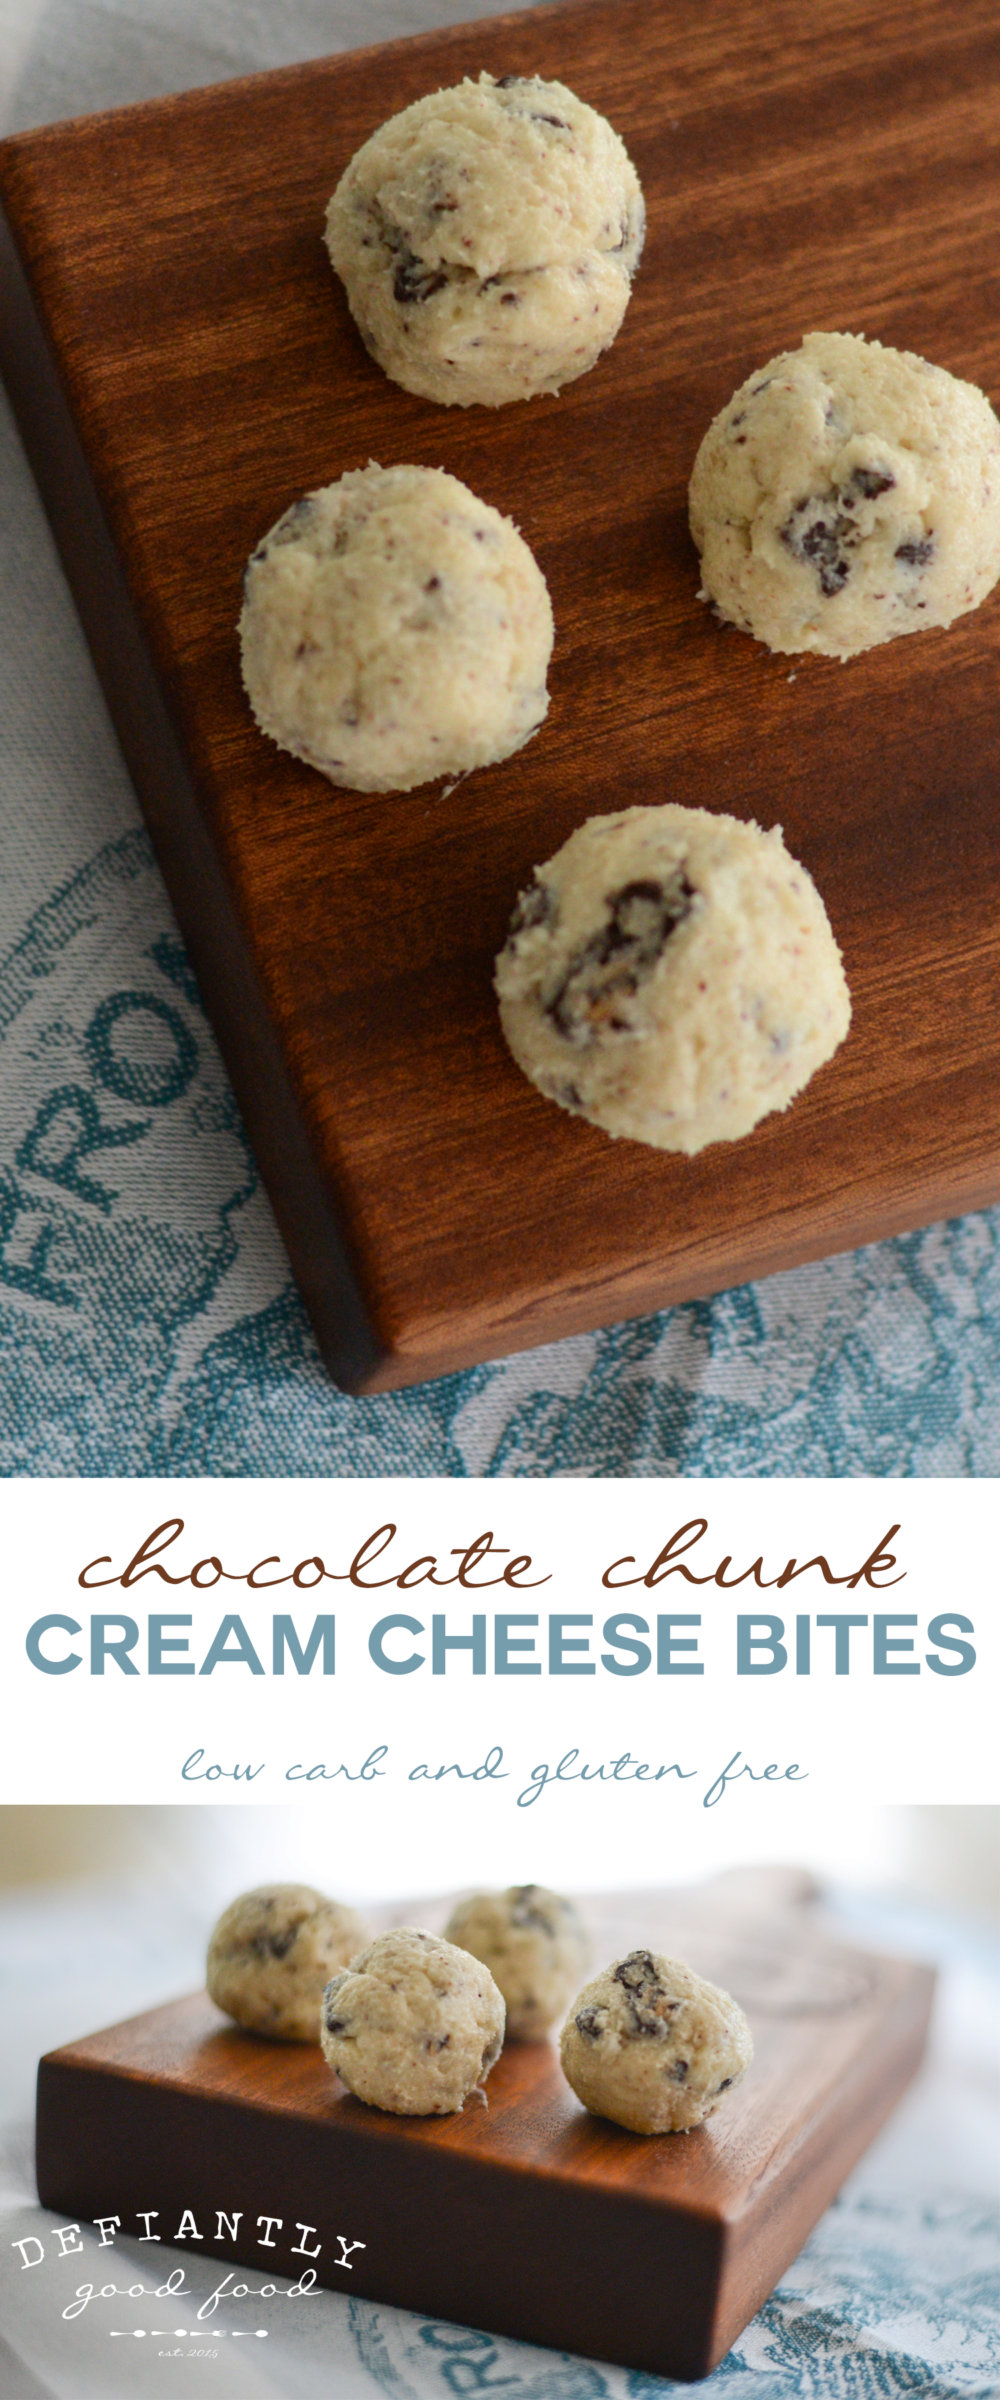 Chocolate Chunk Cream Cheese Bites       low carb        gluten free